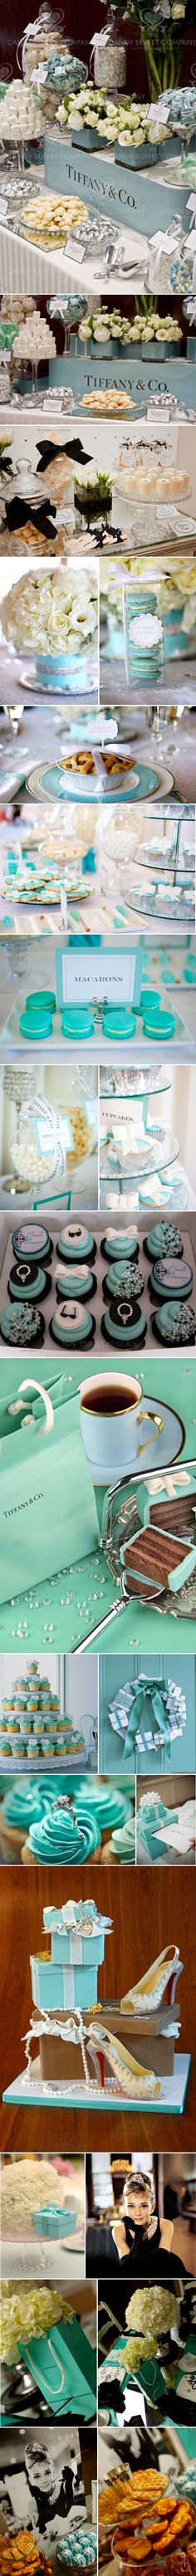 a Tiffany party! Miss @Evan Harsh this is totally inspiring for the shower I'm planning for you...like a year in advance:)